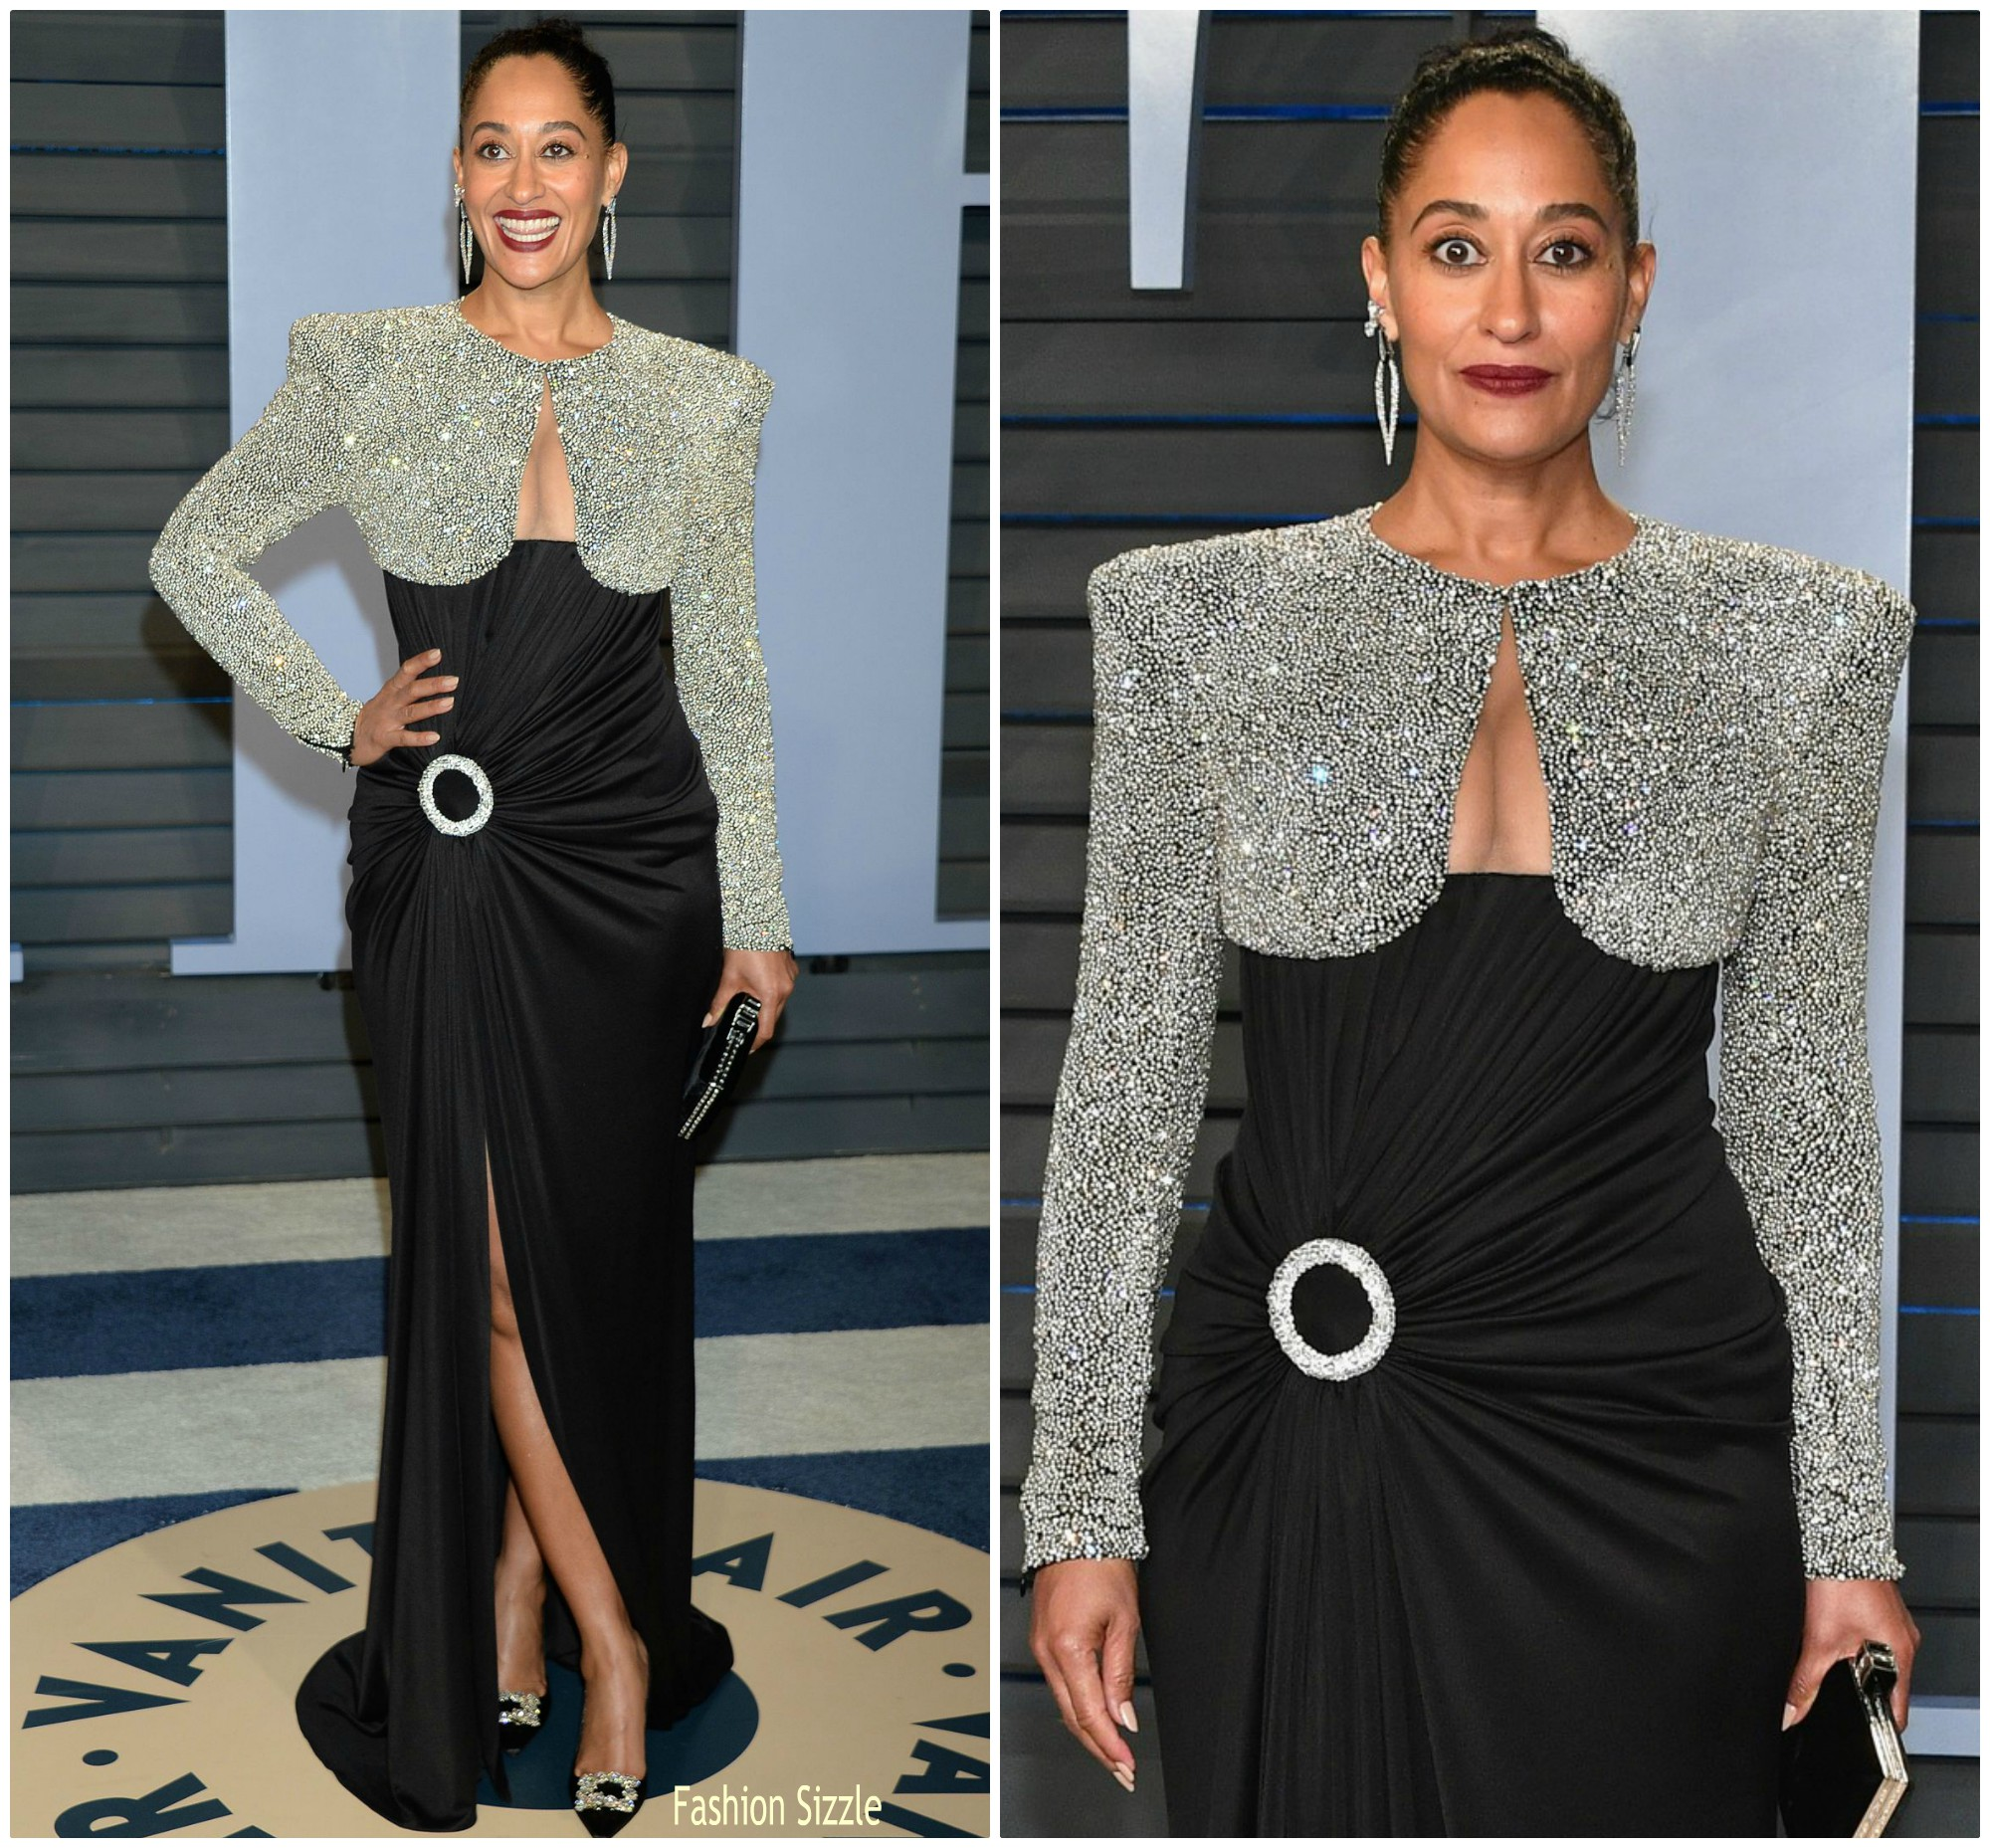 tracee-ellis-ross-in-balmain-44-francios-premier-2018-vanity-fair-oscar-party